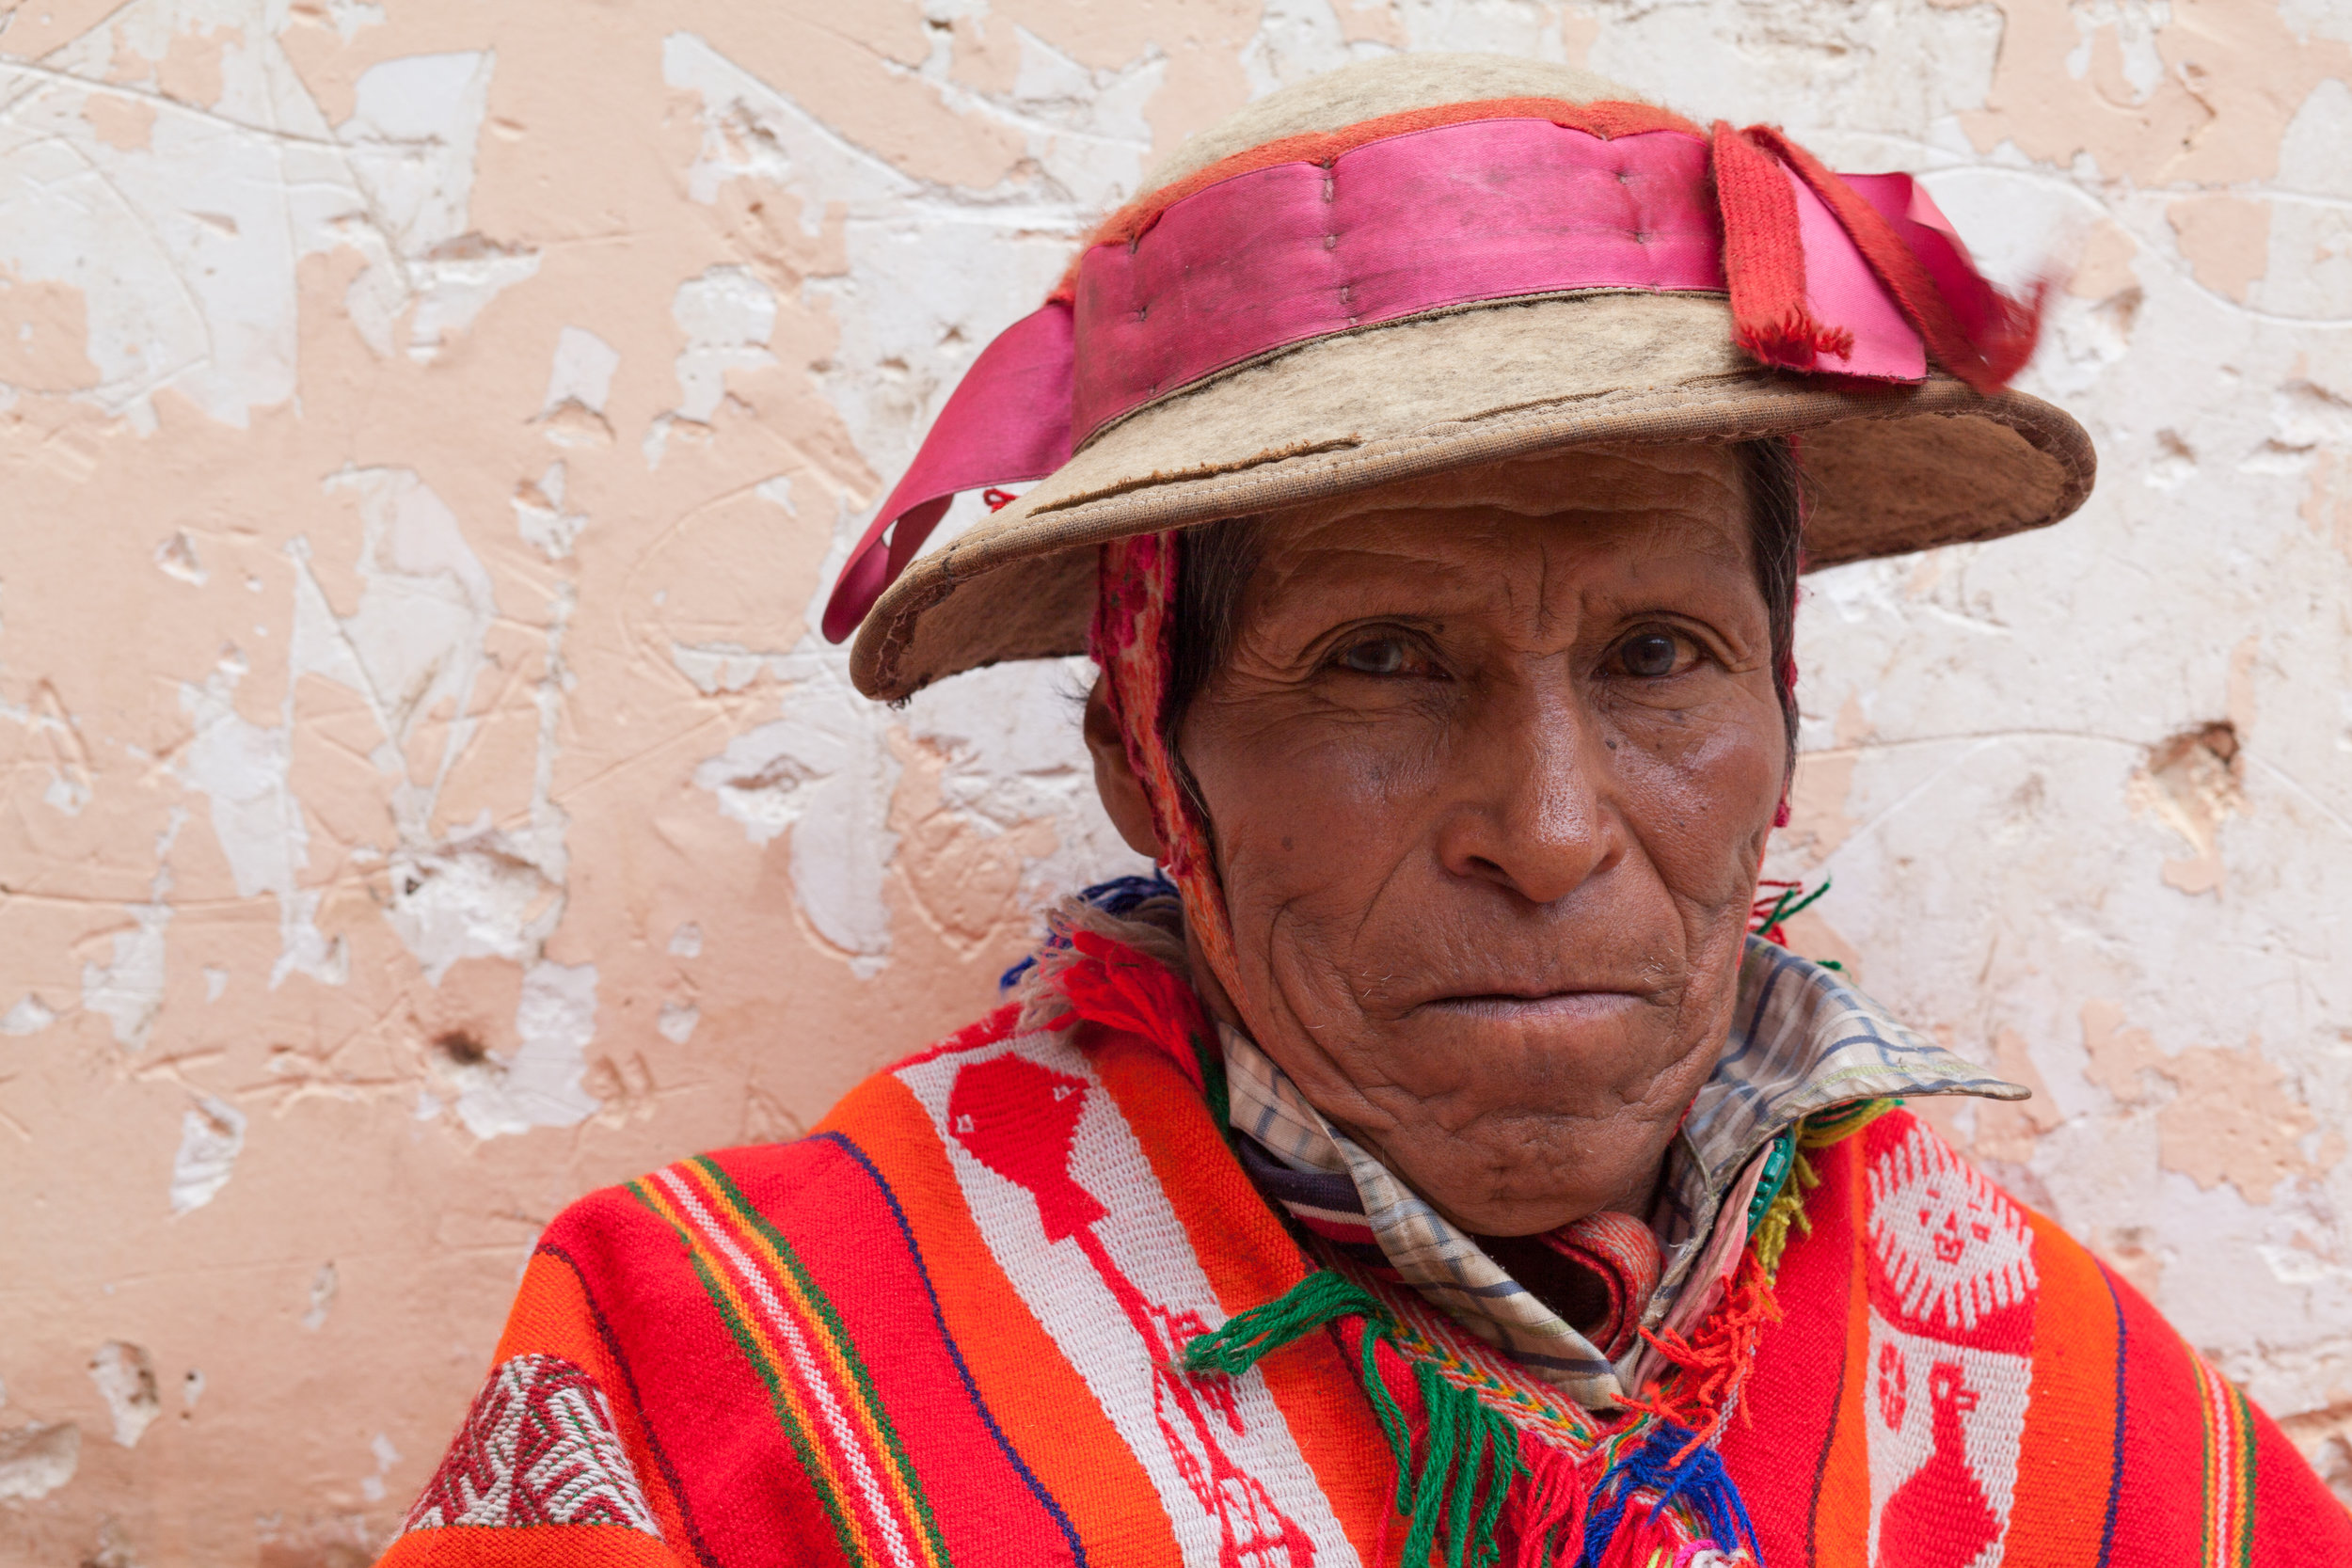 Peruvian portrait in Ollantaytambo in the Sacred Valley.